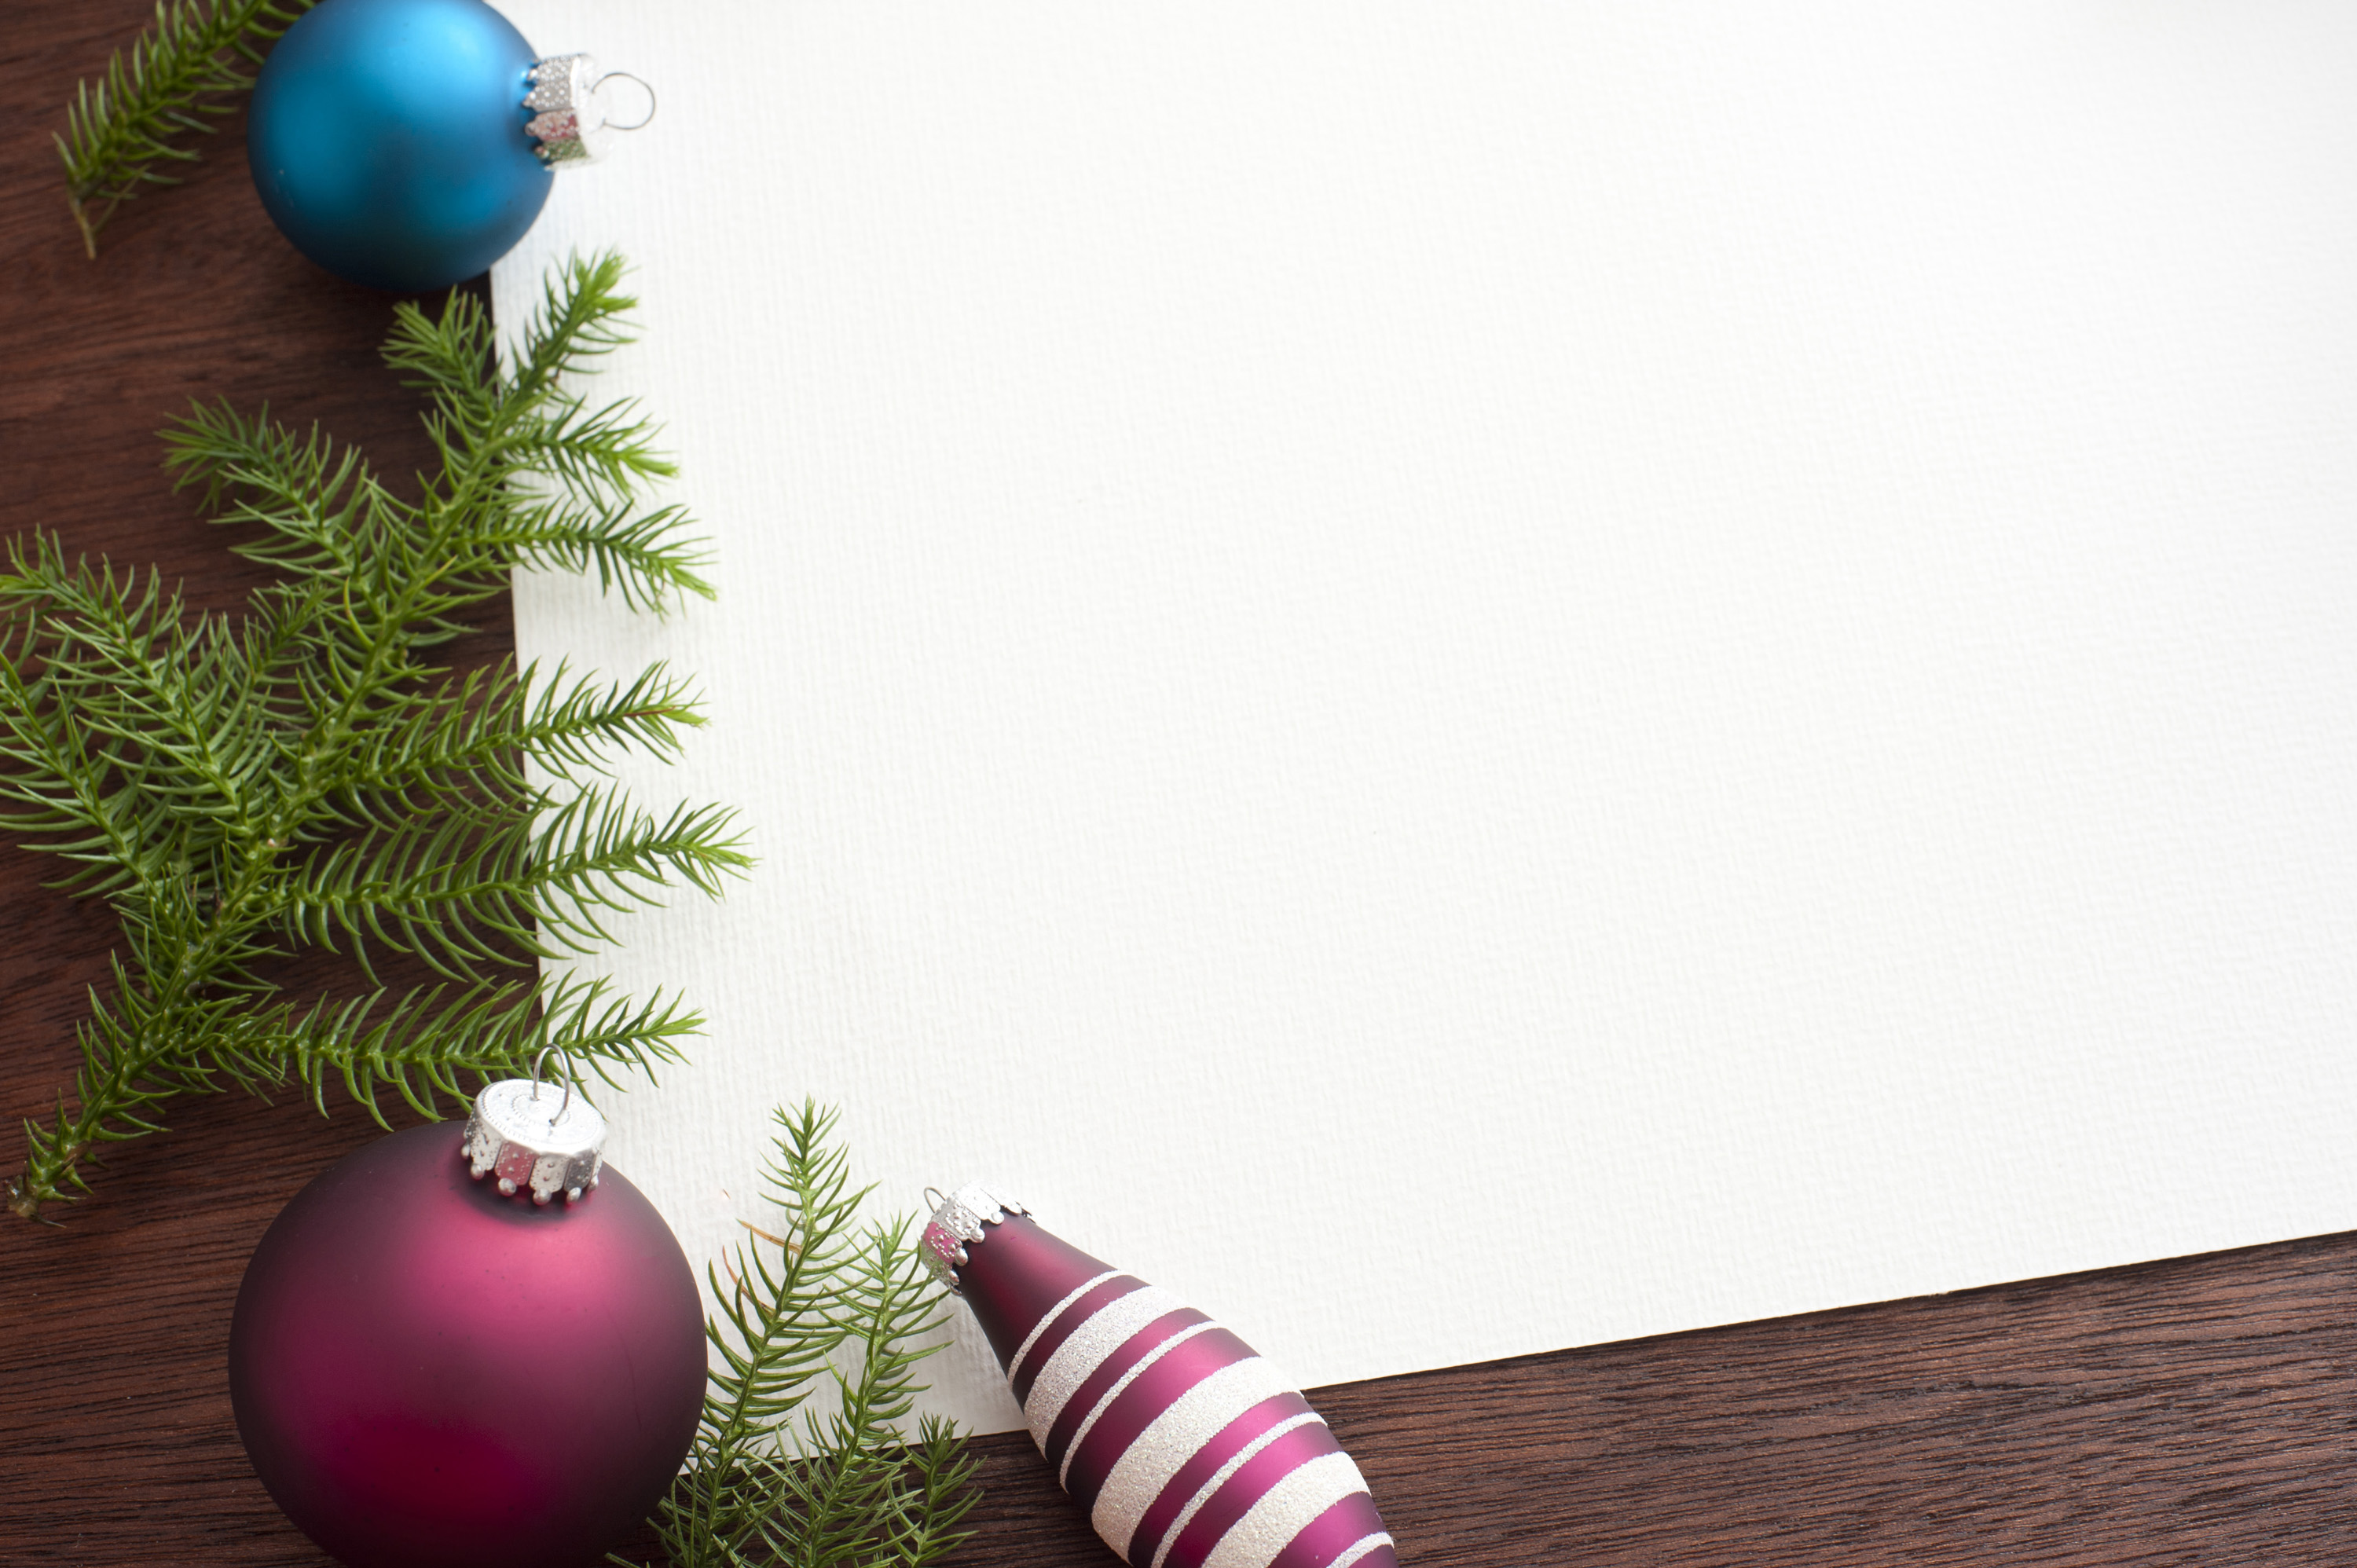 Christmas Tree With Paper